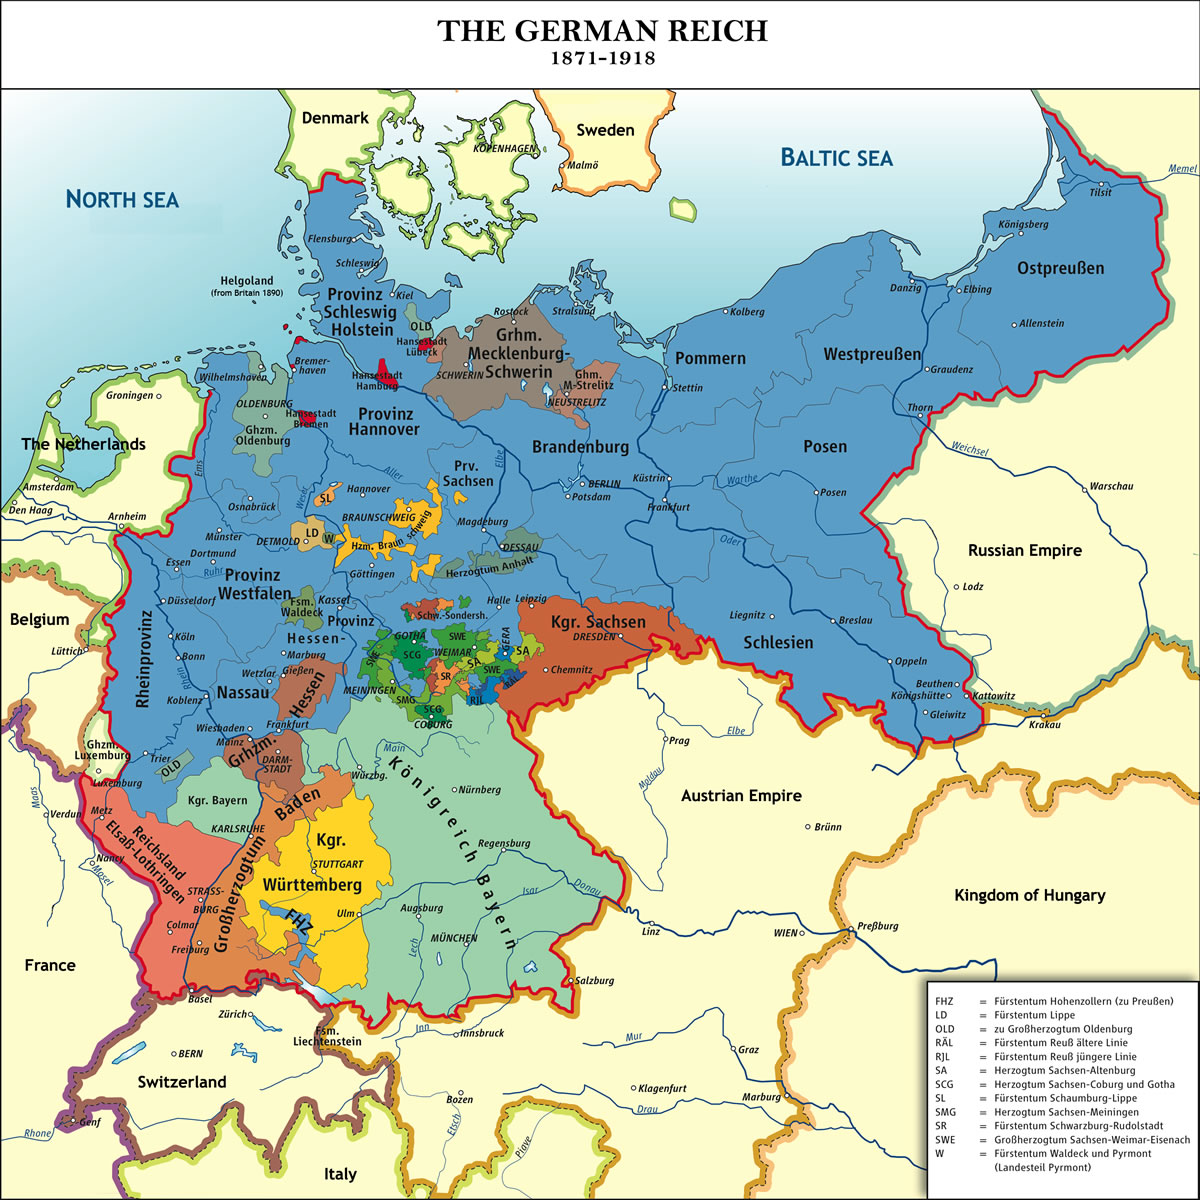 A WWI era map of Germany